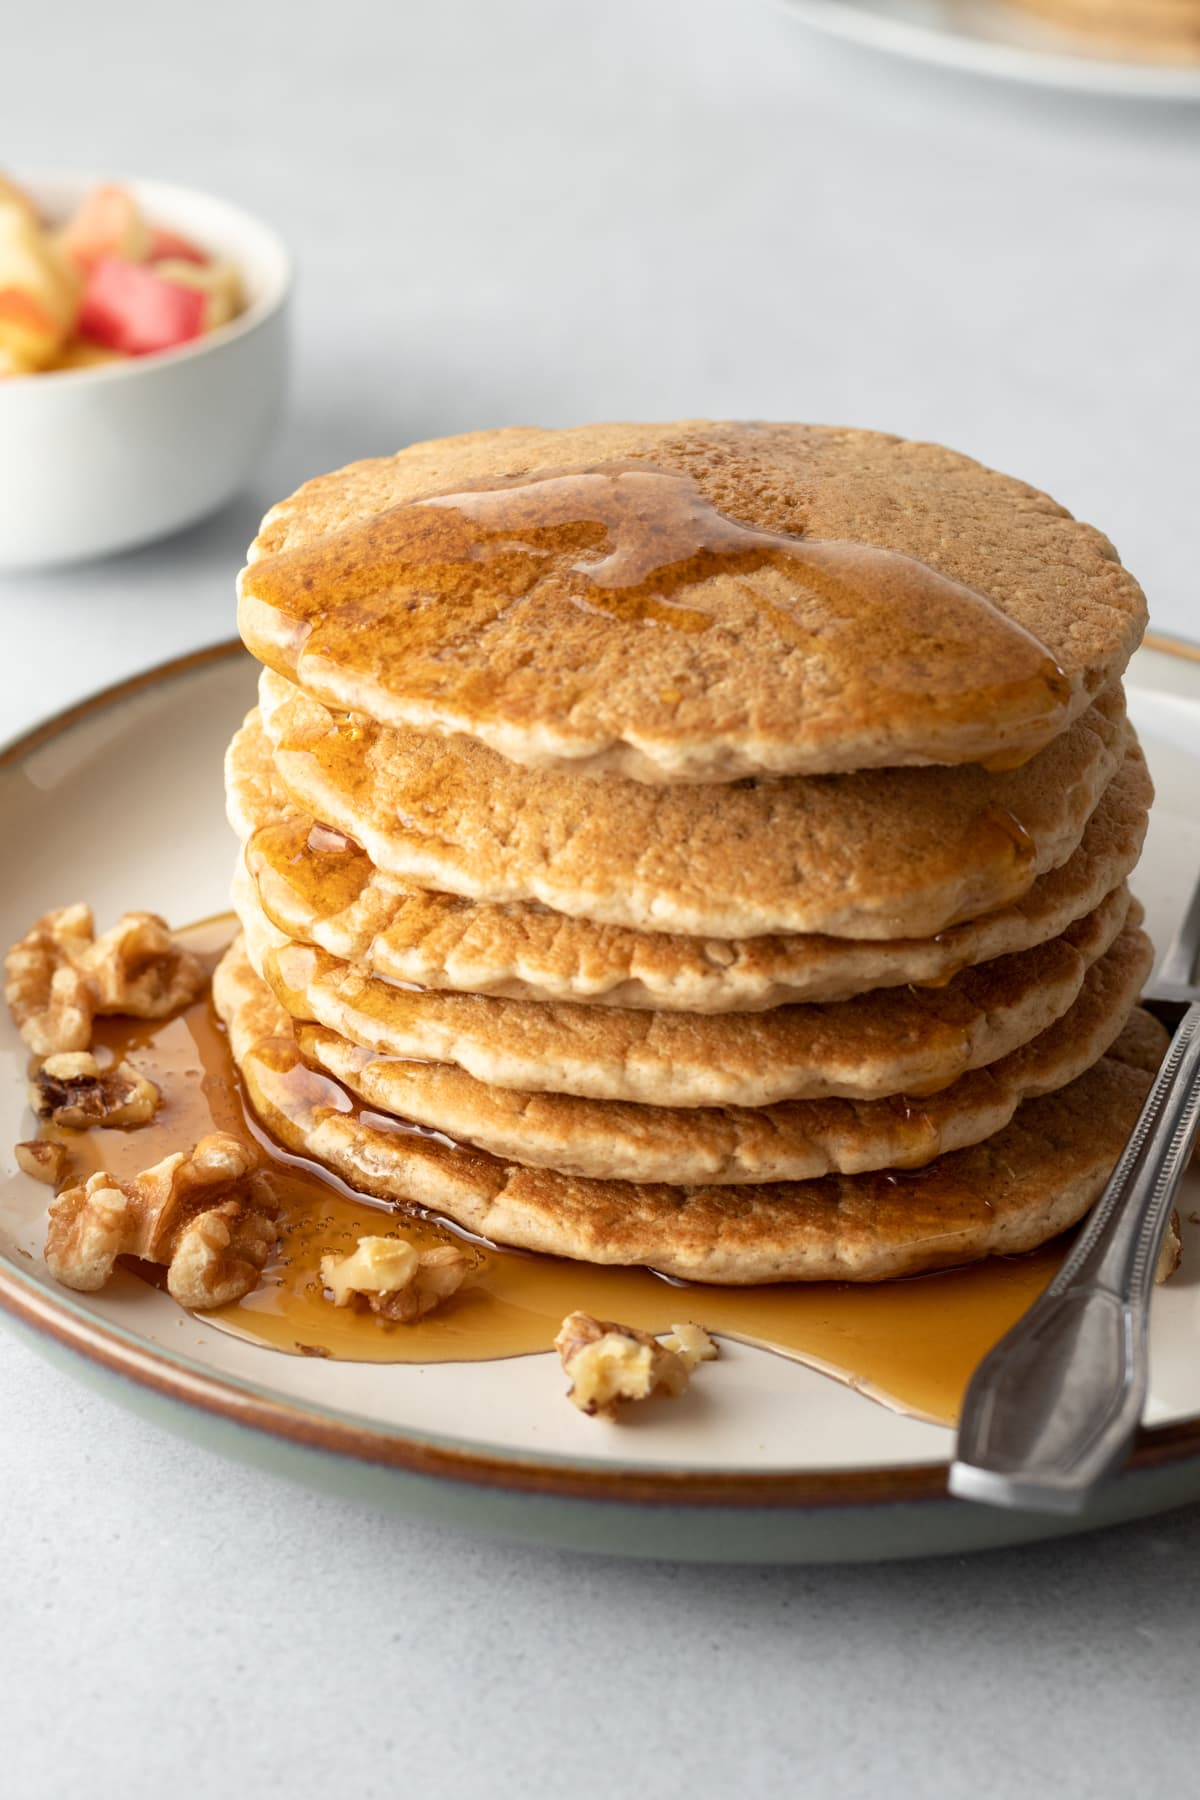 a stack of golden pancakes drizzled with maple syrup